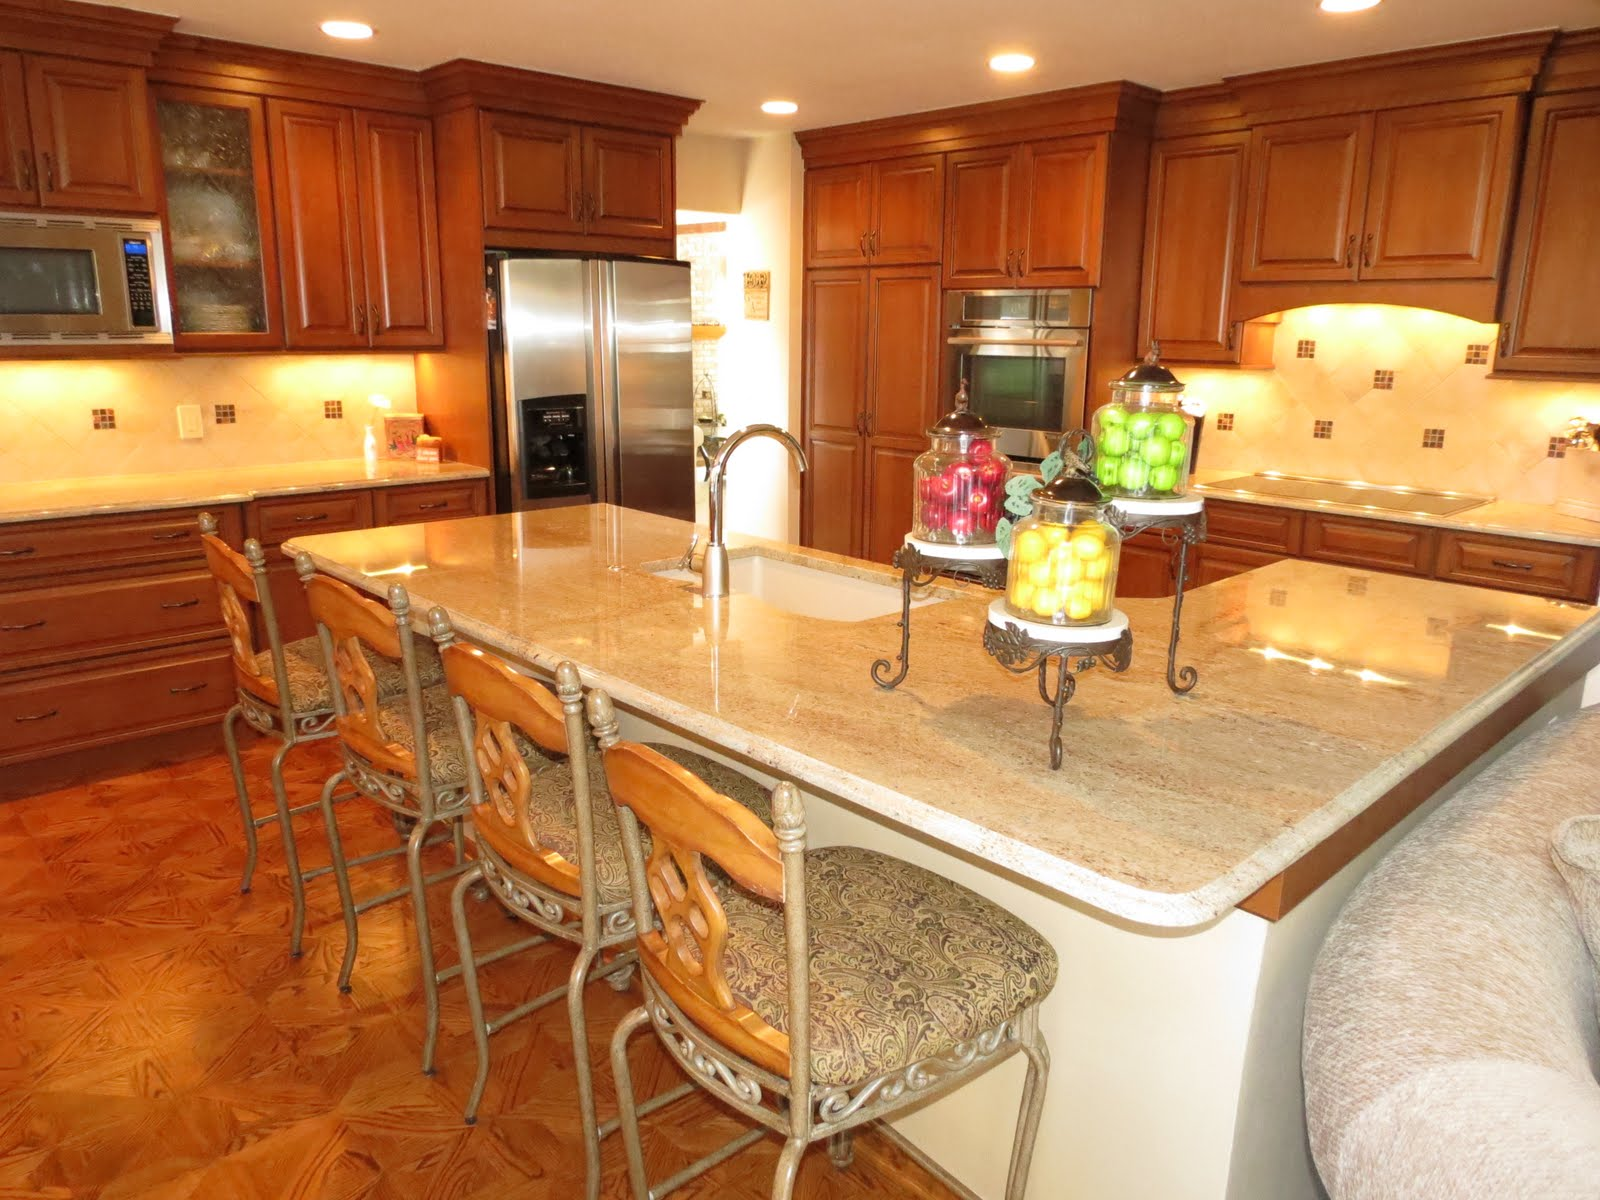 KC Cabinetry Design and Renovation